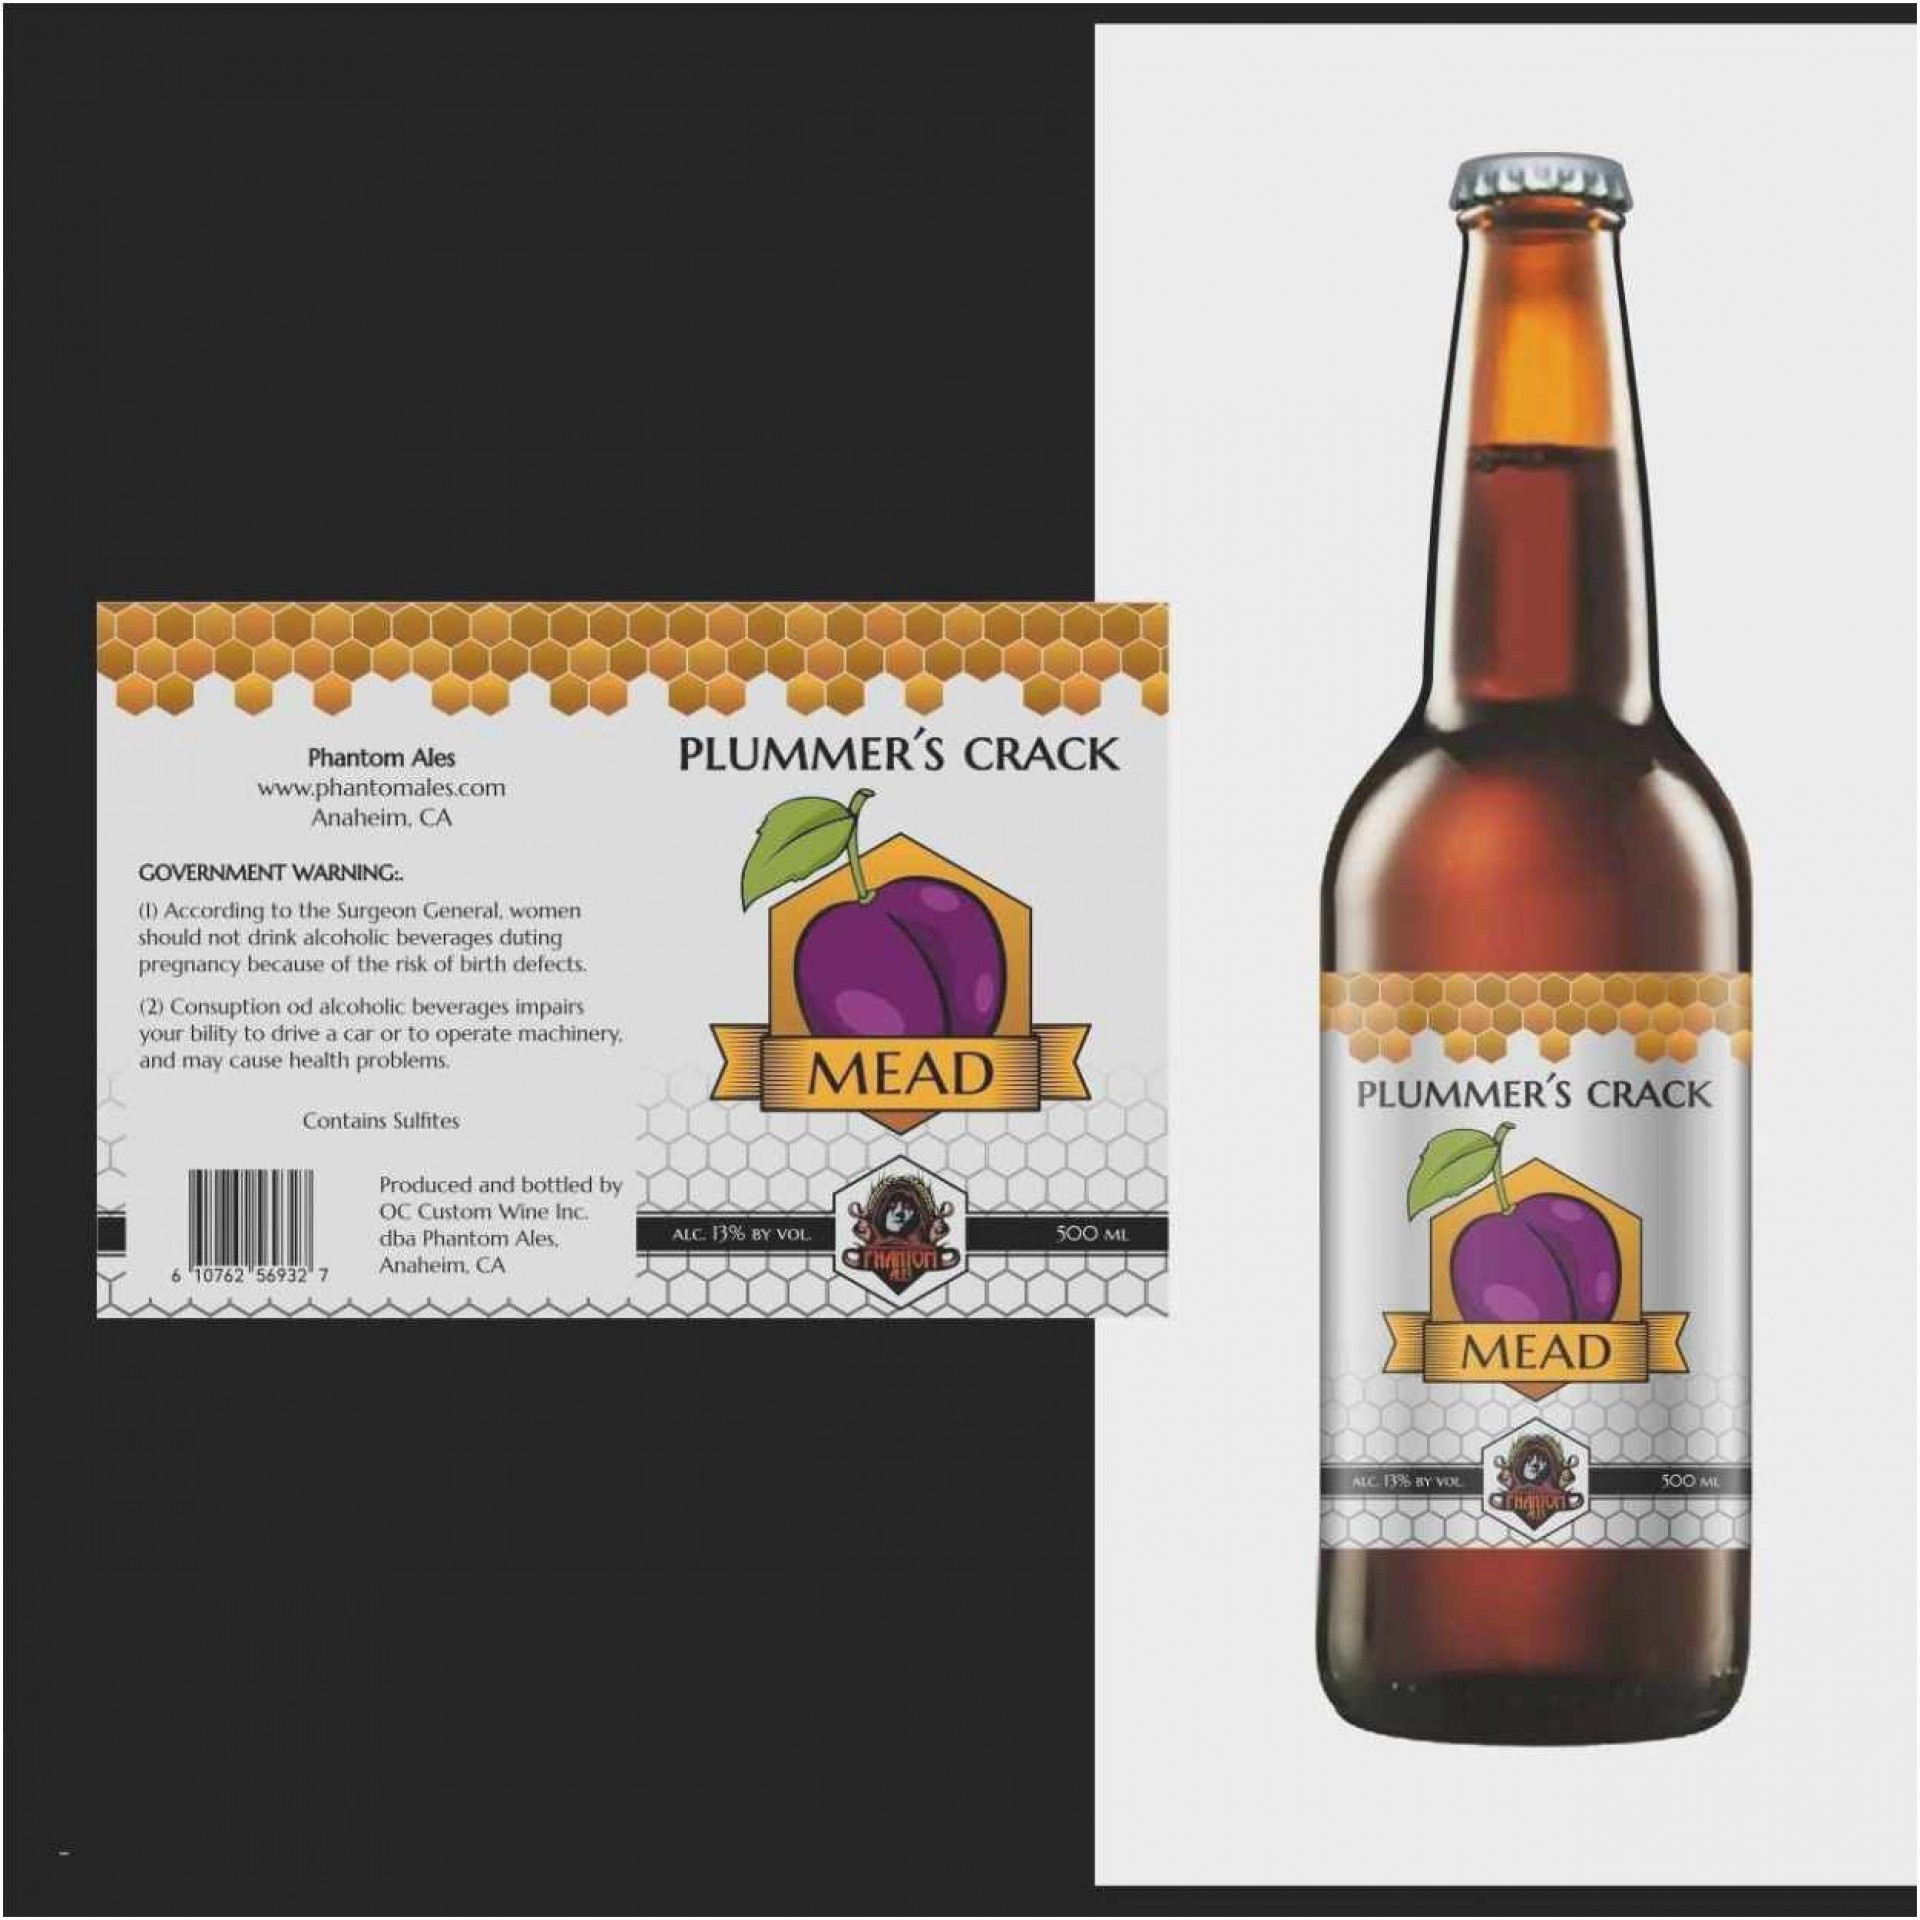 003 Archaicawful Beer Bottle Label Template Word Idea  Free1920